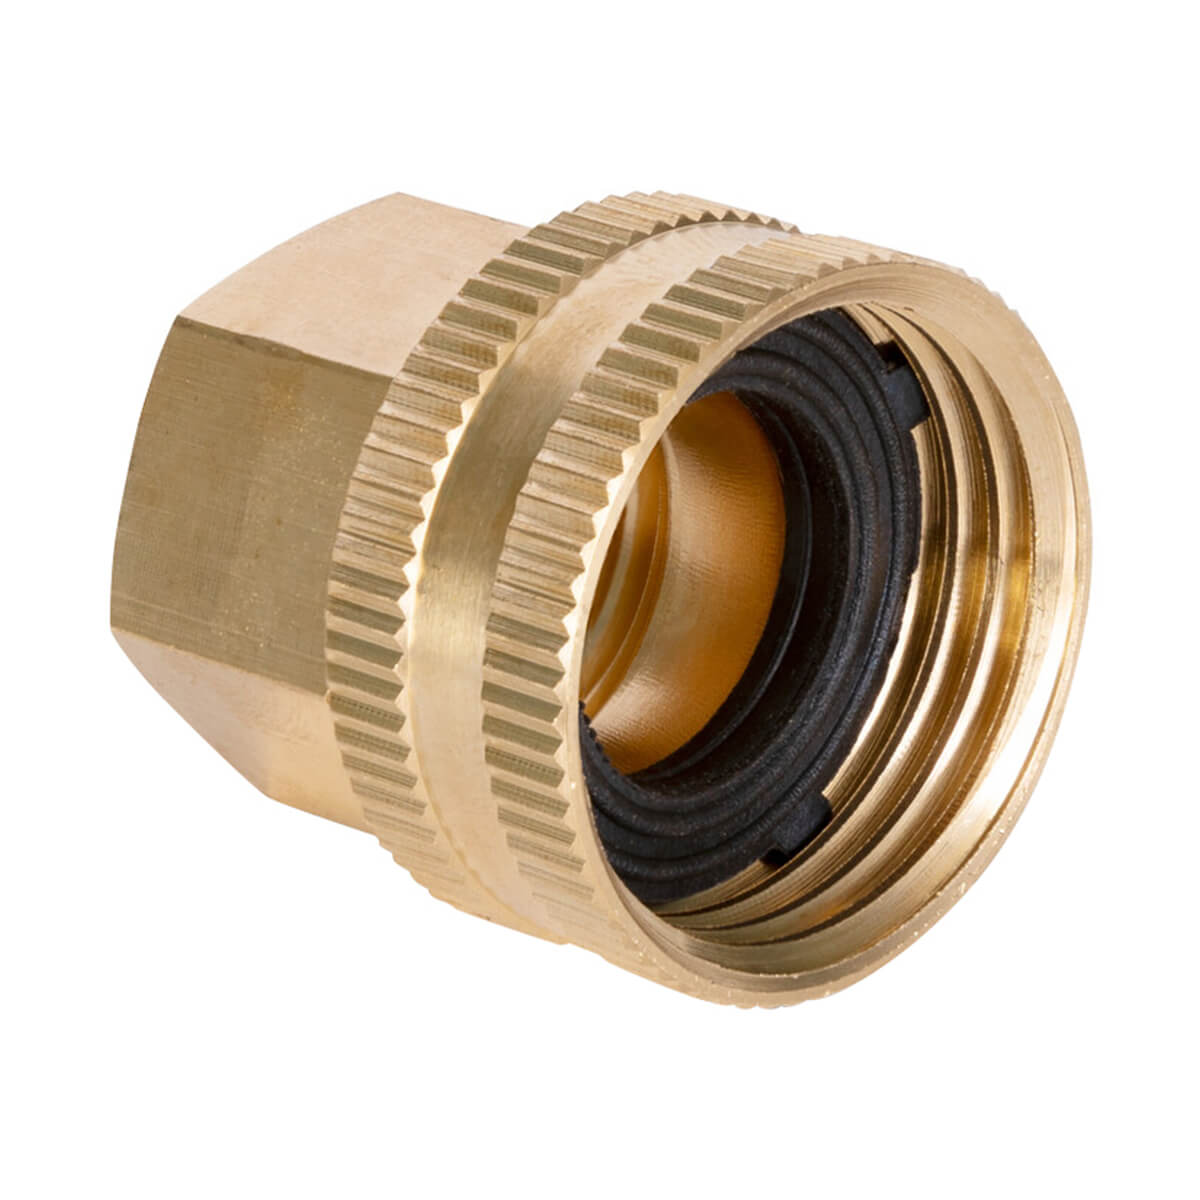 Brass Double Female Swivel Connector